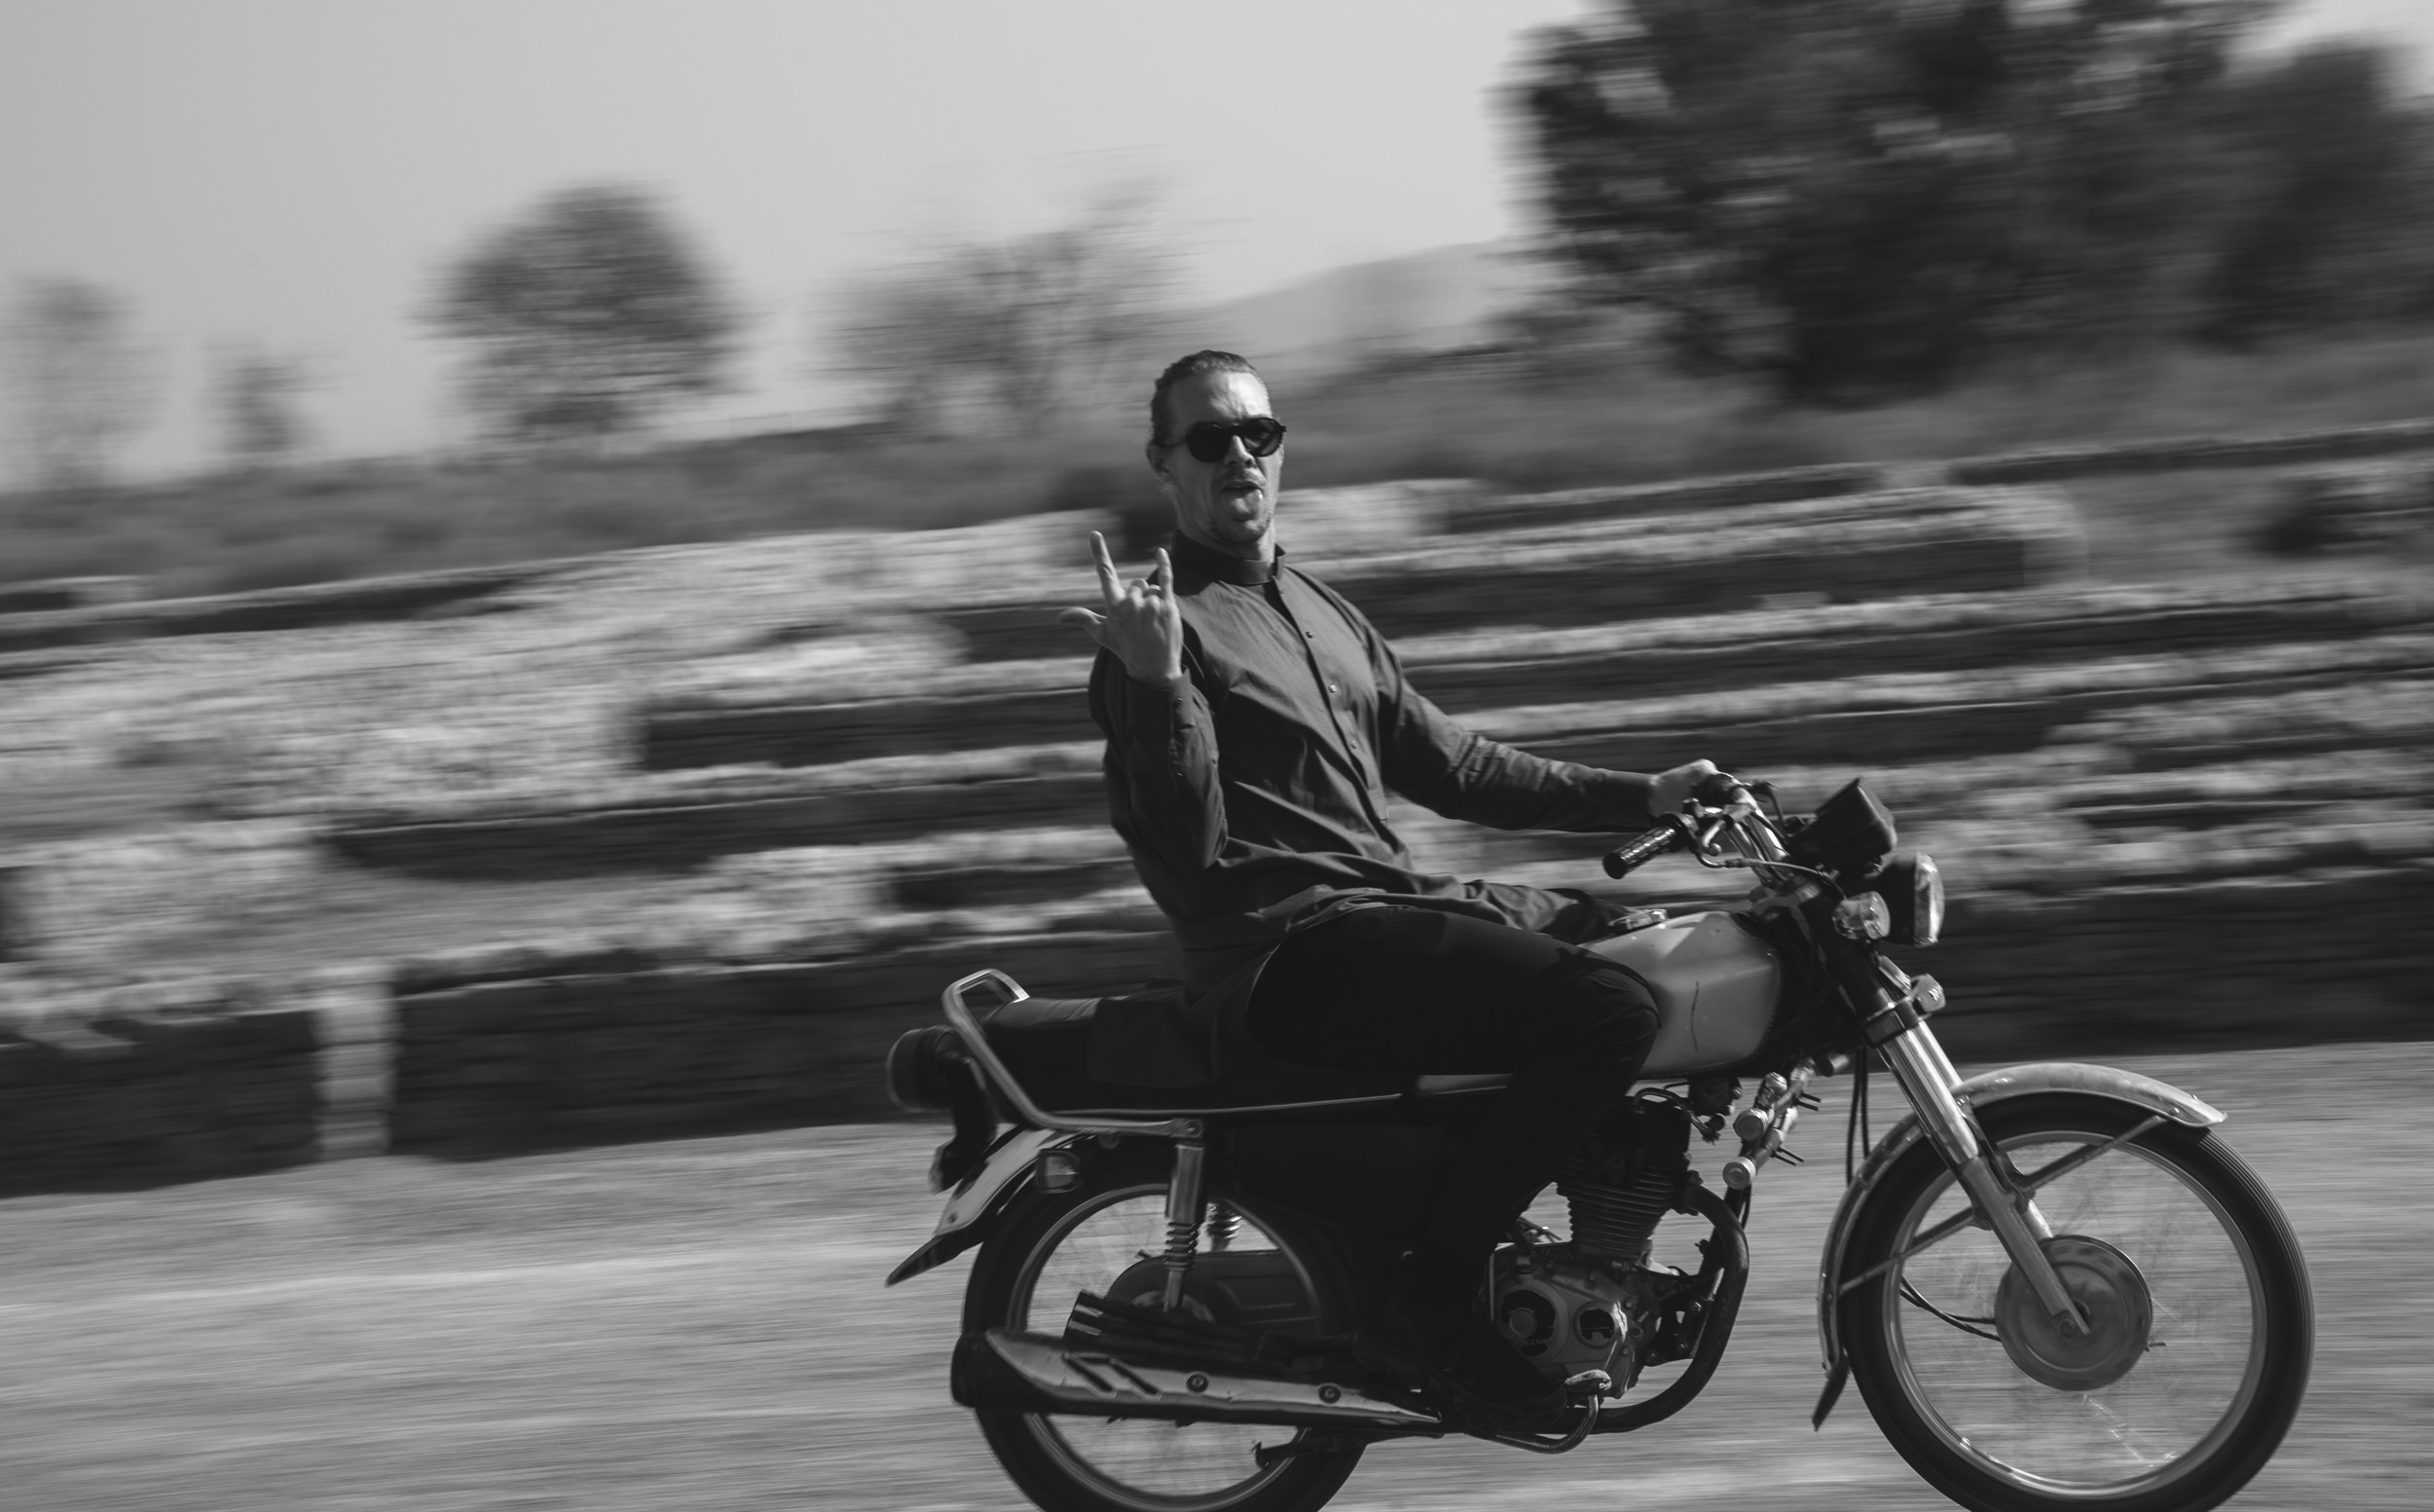 Diplo on a motorbike